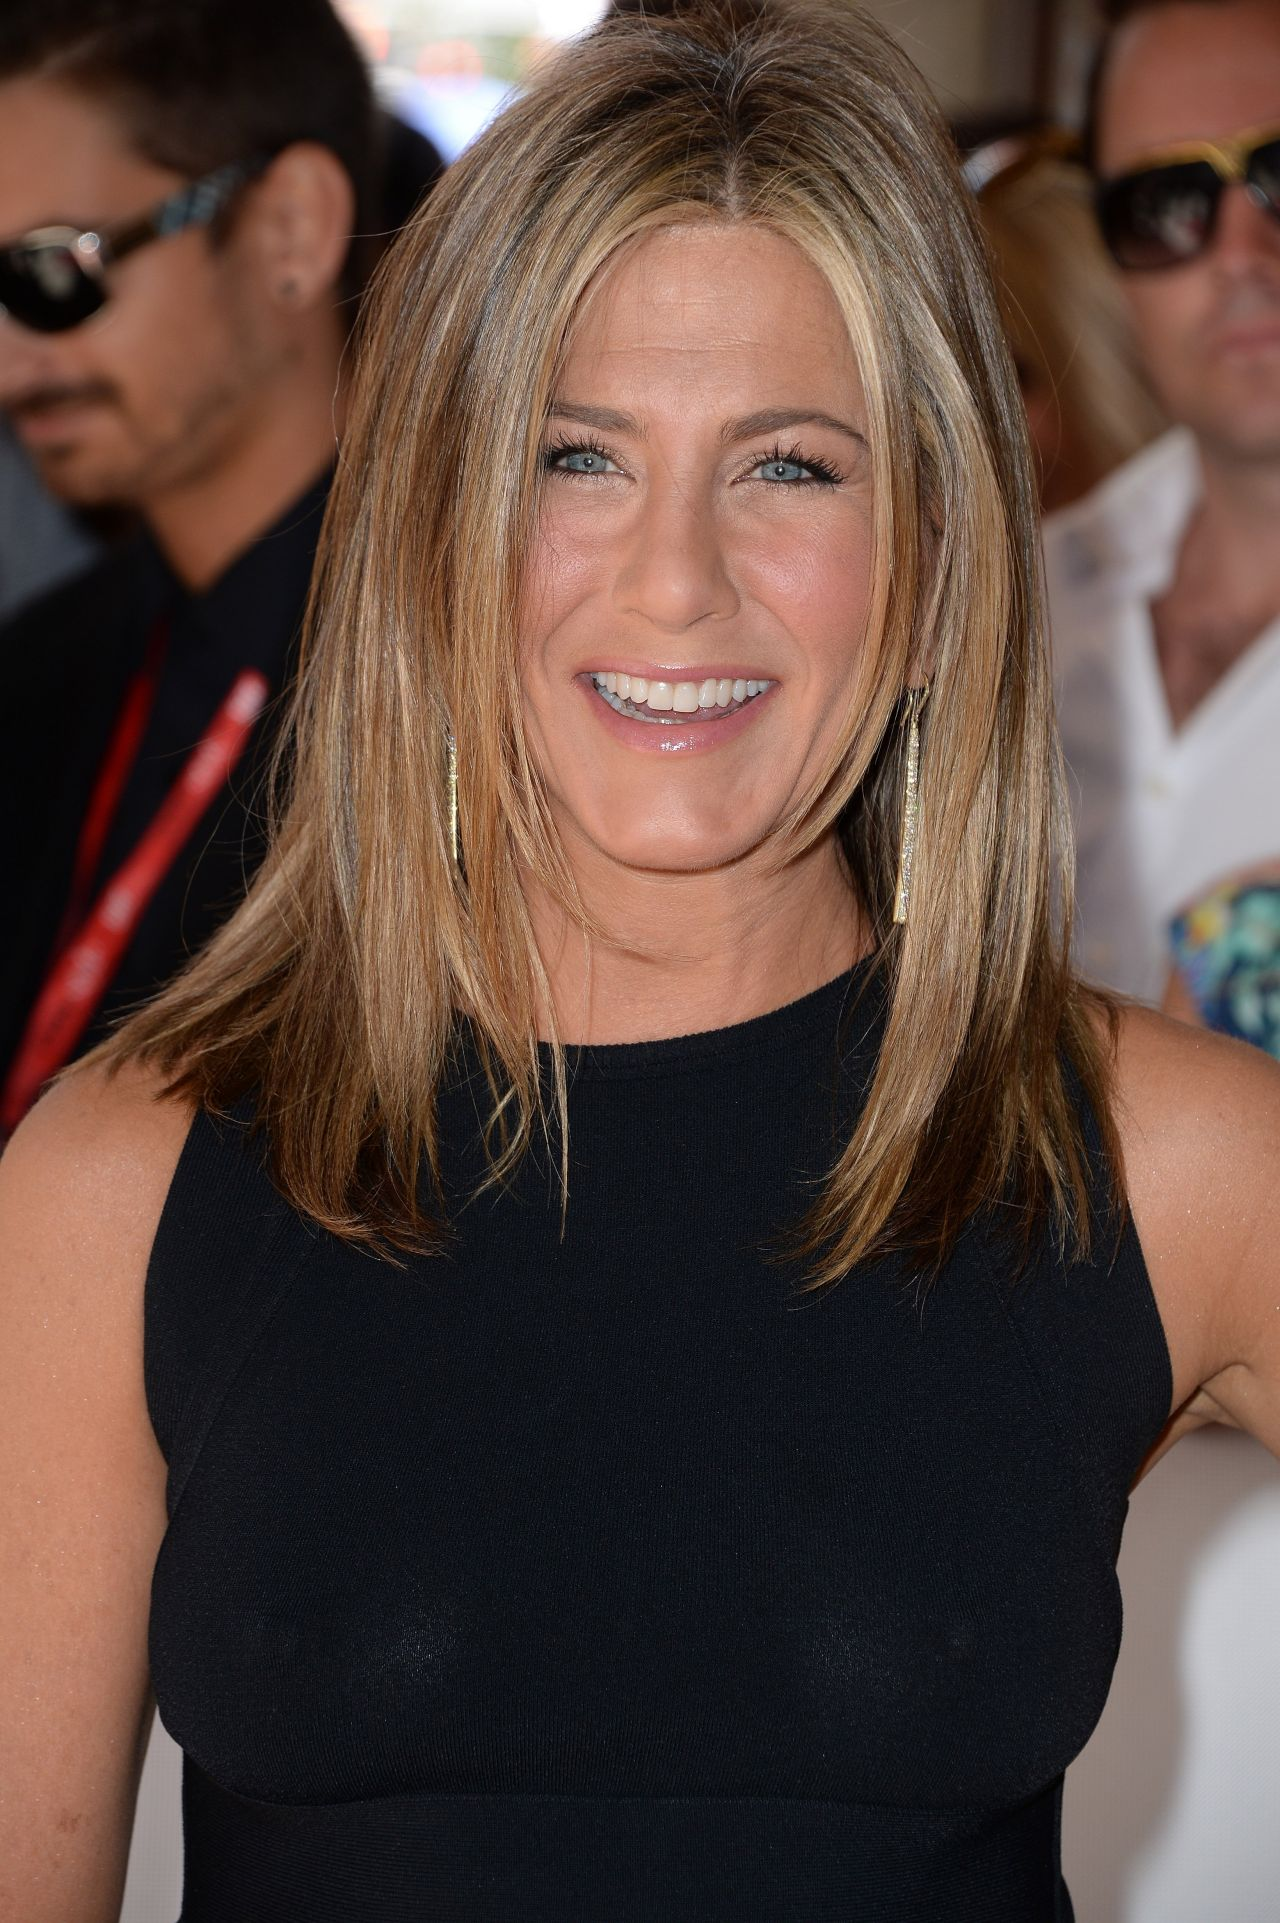 Jennifer Aniston – 'Cake' Premiere – 2014 TIFF Jennifer Aniston